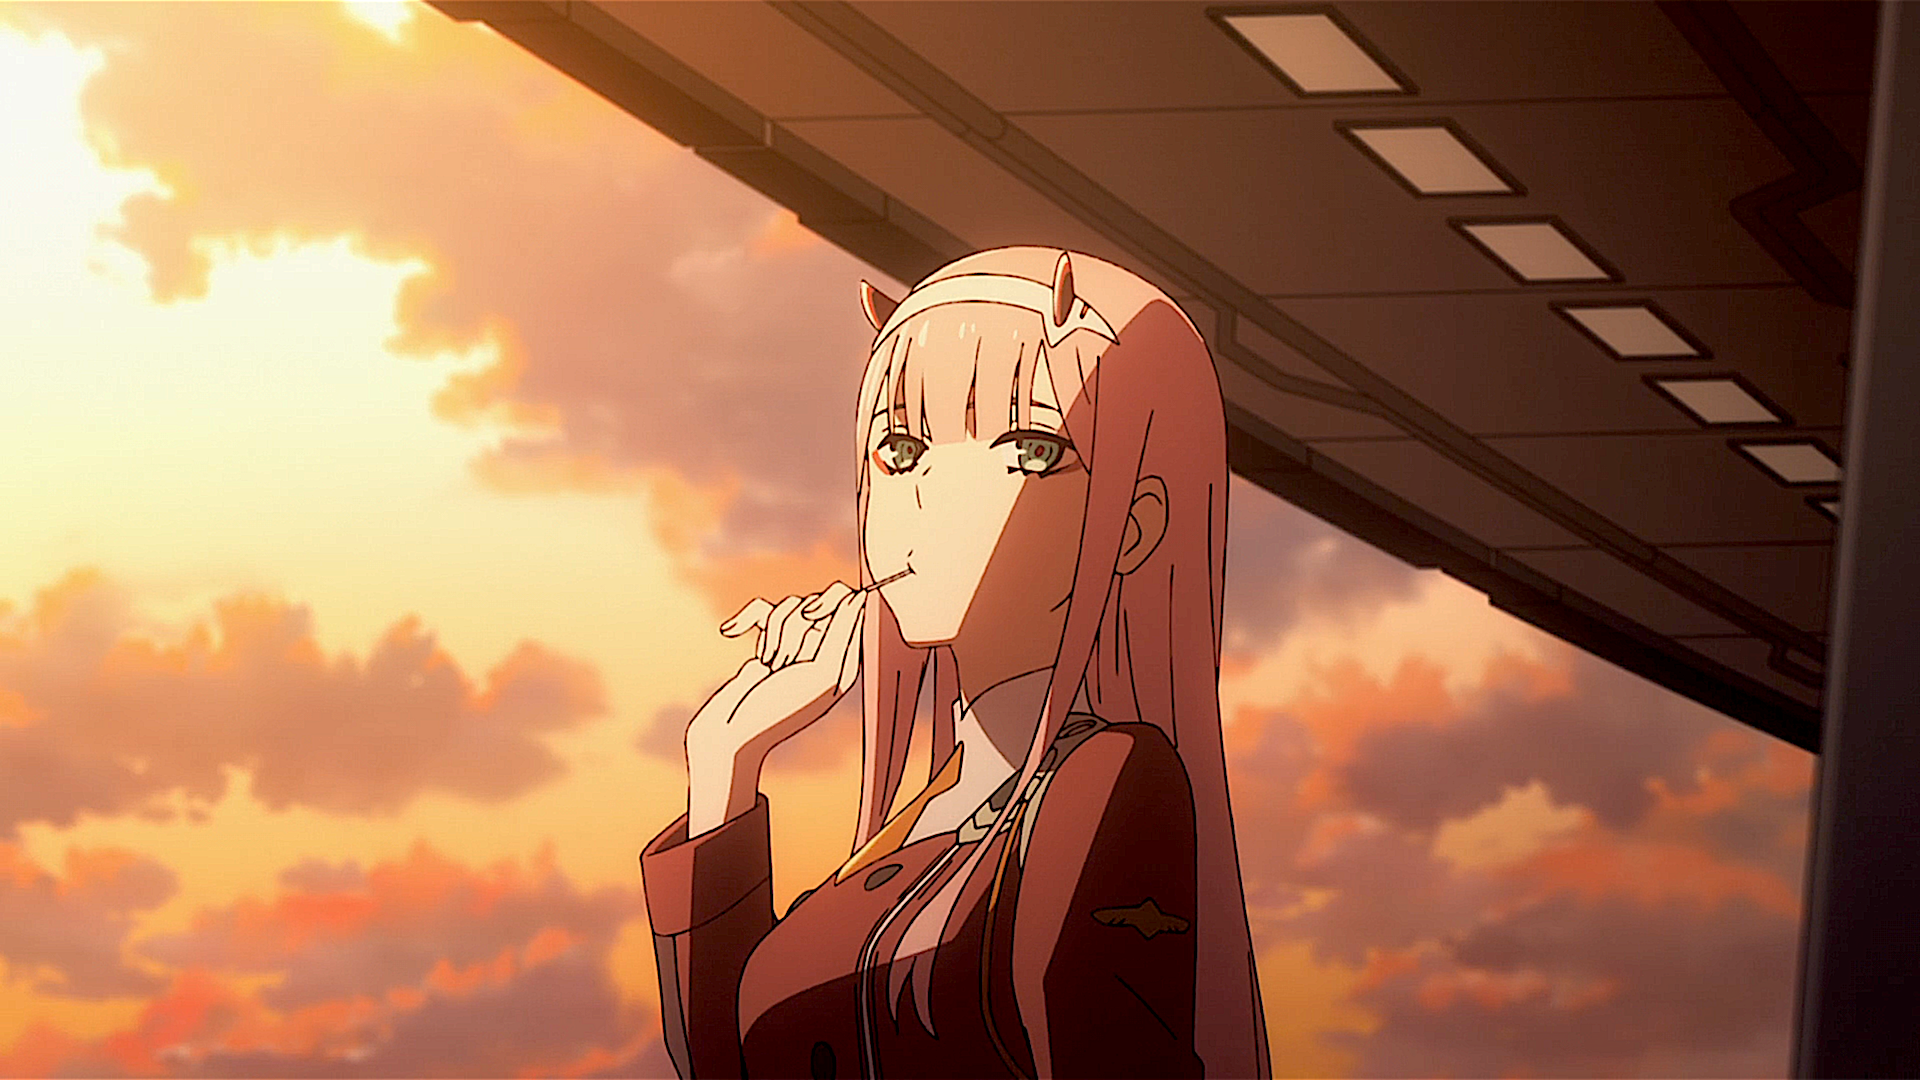 动漫 - Darling in the FranXX  Zero Two (Darling in the FranXX) Lollipop Military Uniform Green Eyes Horns 动漫 Pink Hair 壁纸